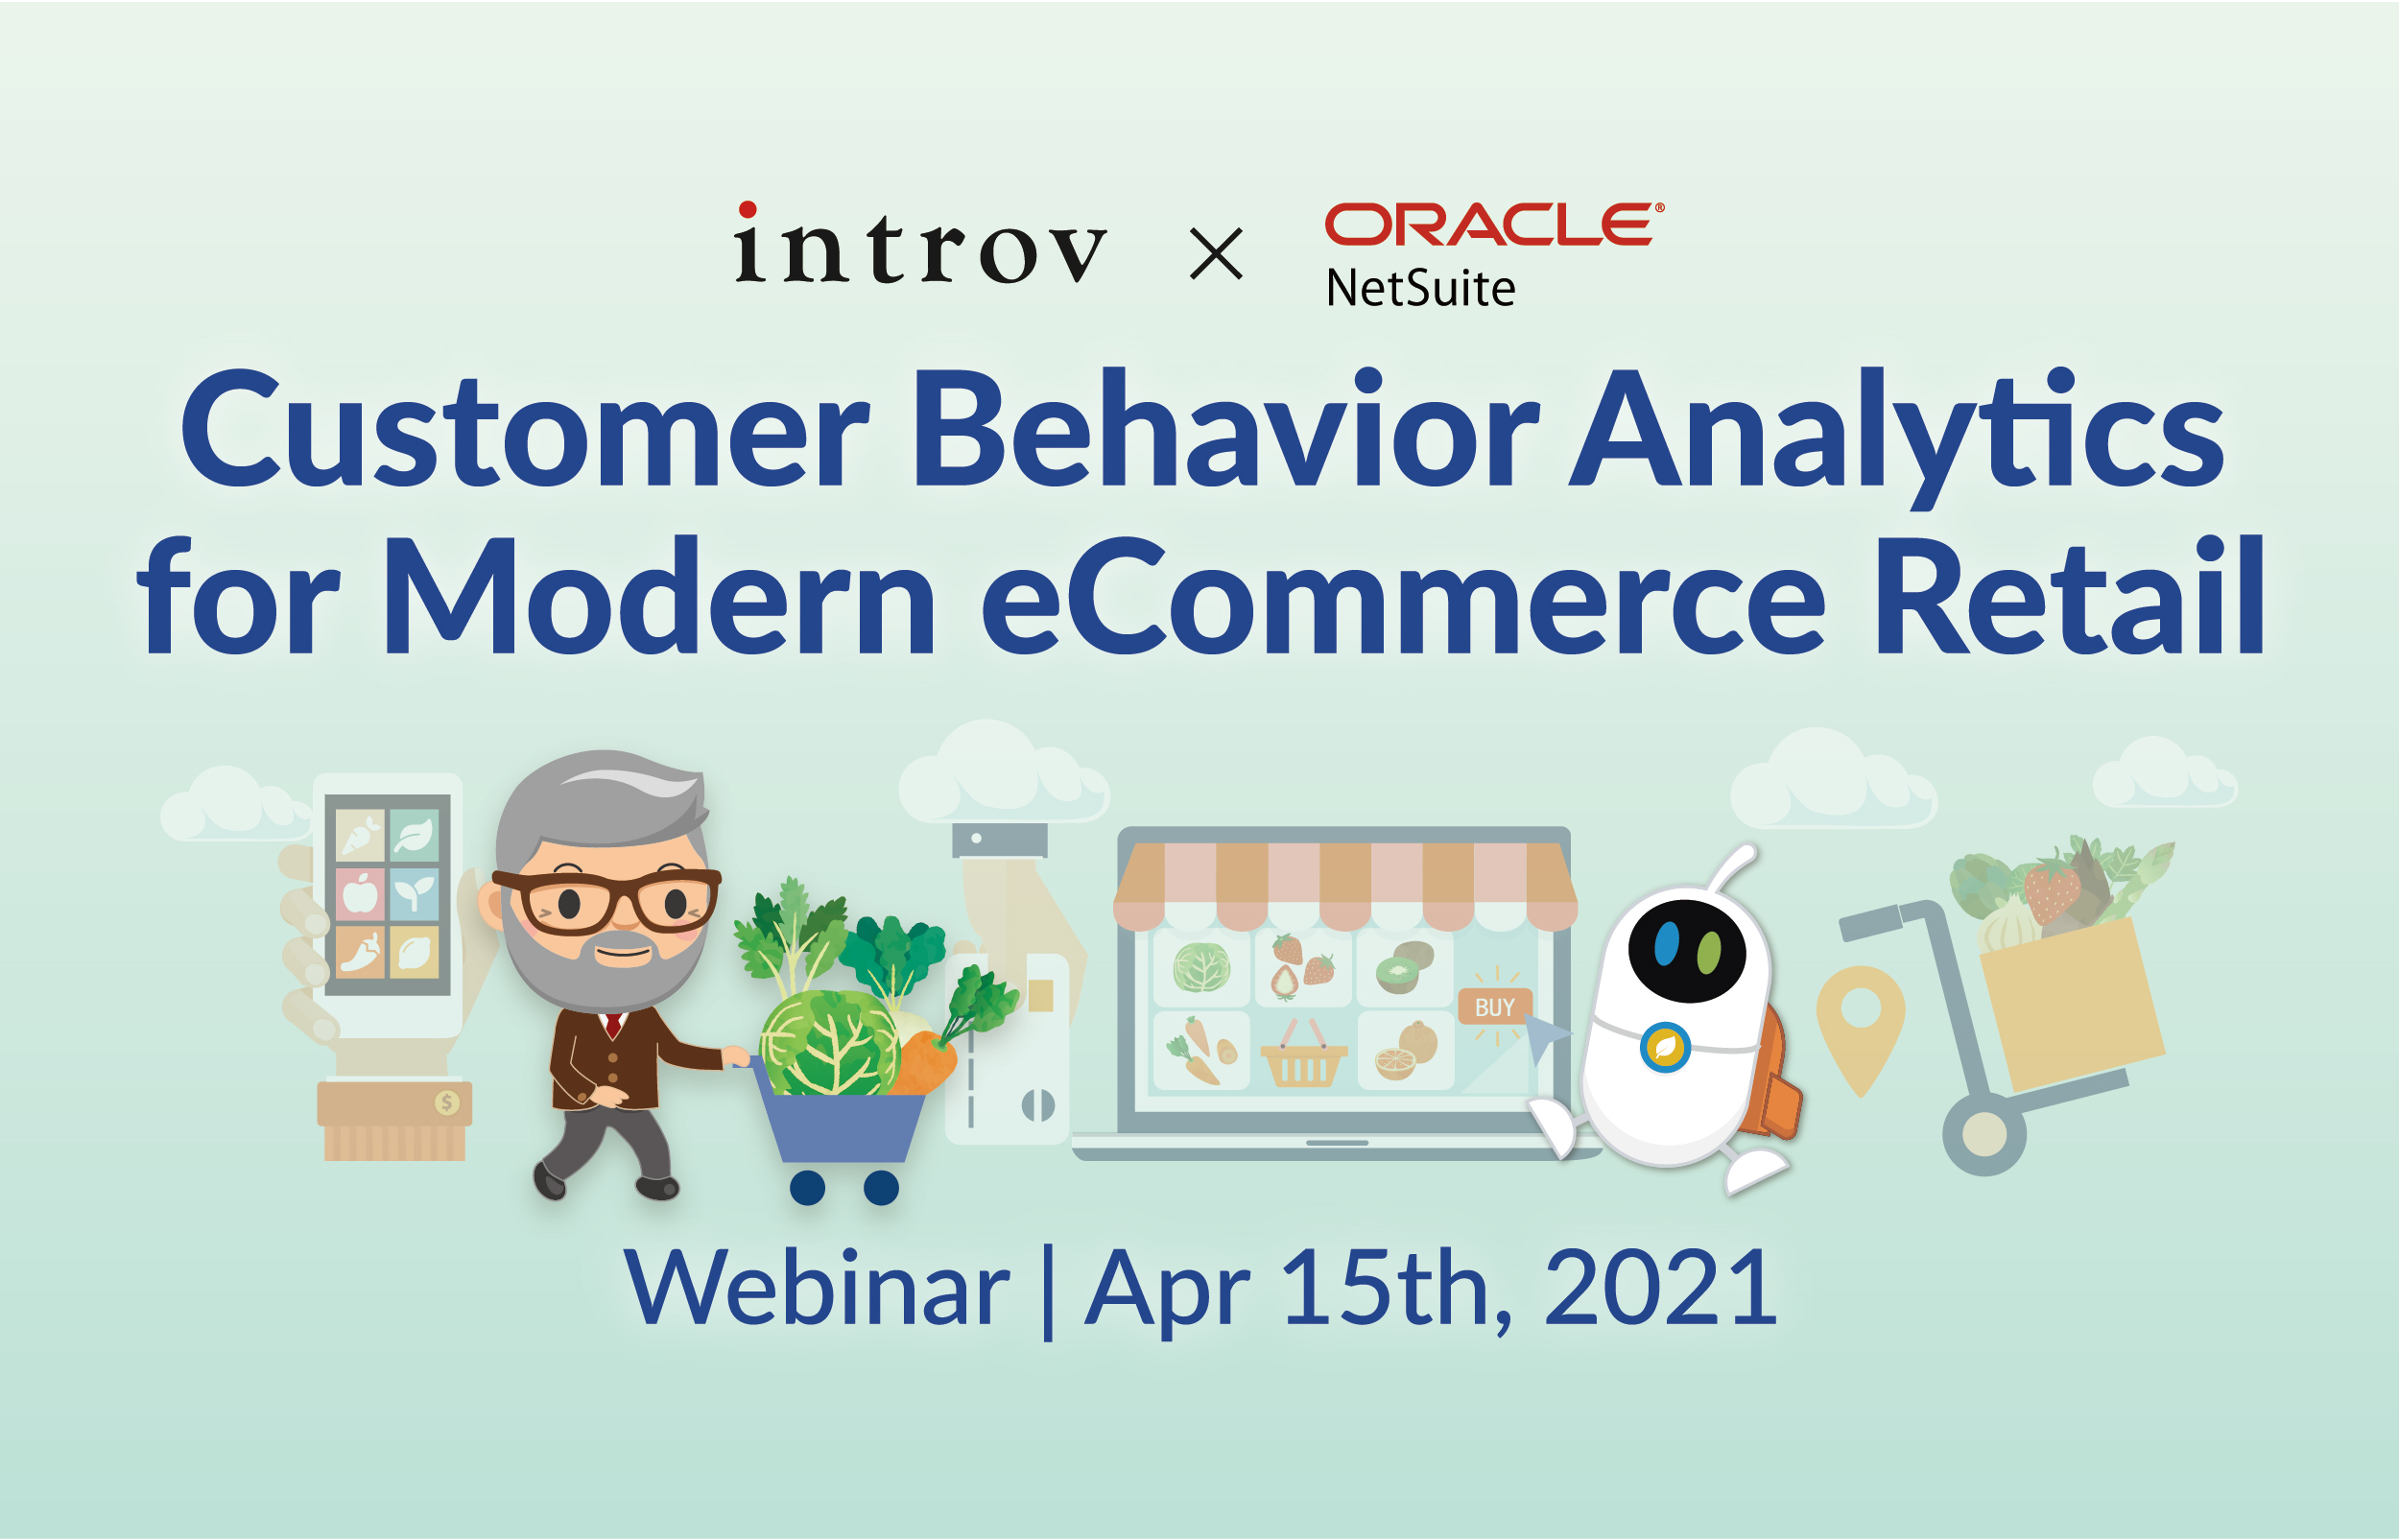 Webinar: Customer Behavior Analytics for Modern eCommerce Retail (April 15th, 2021)